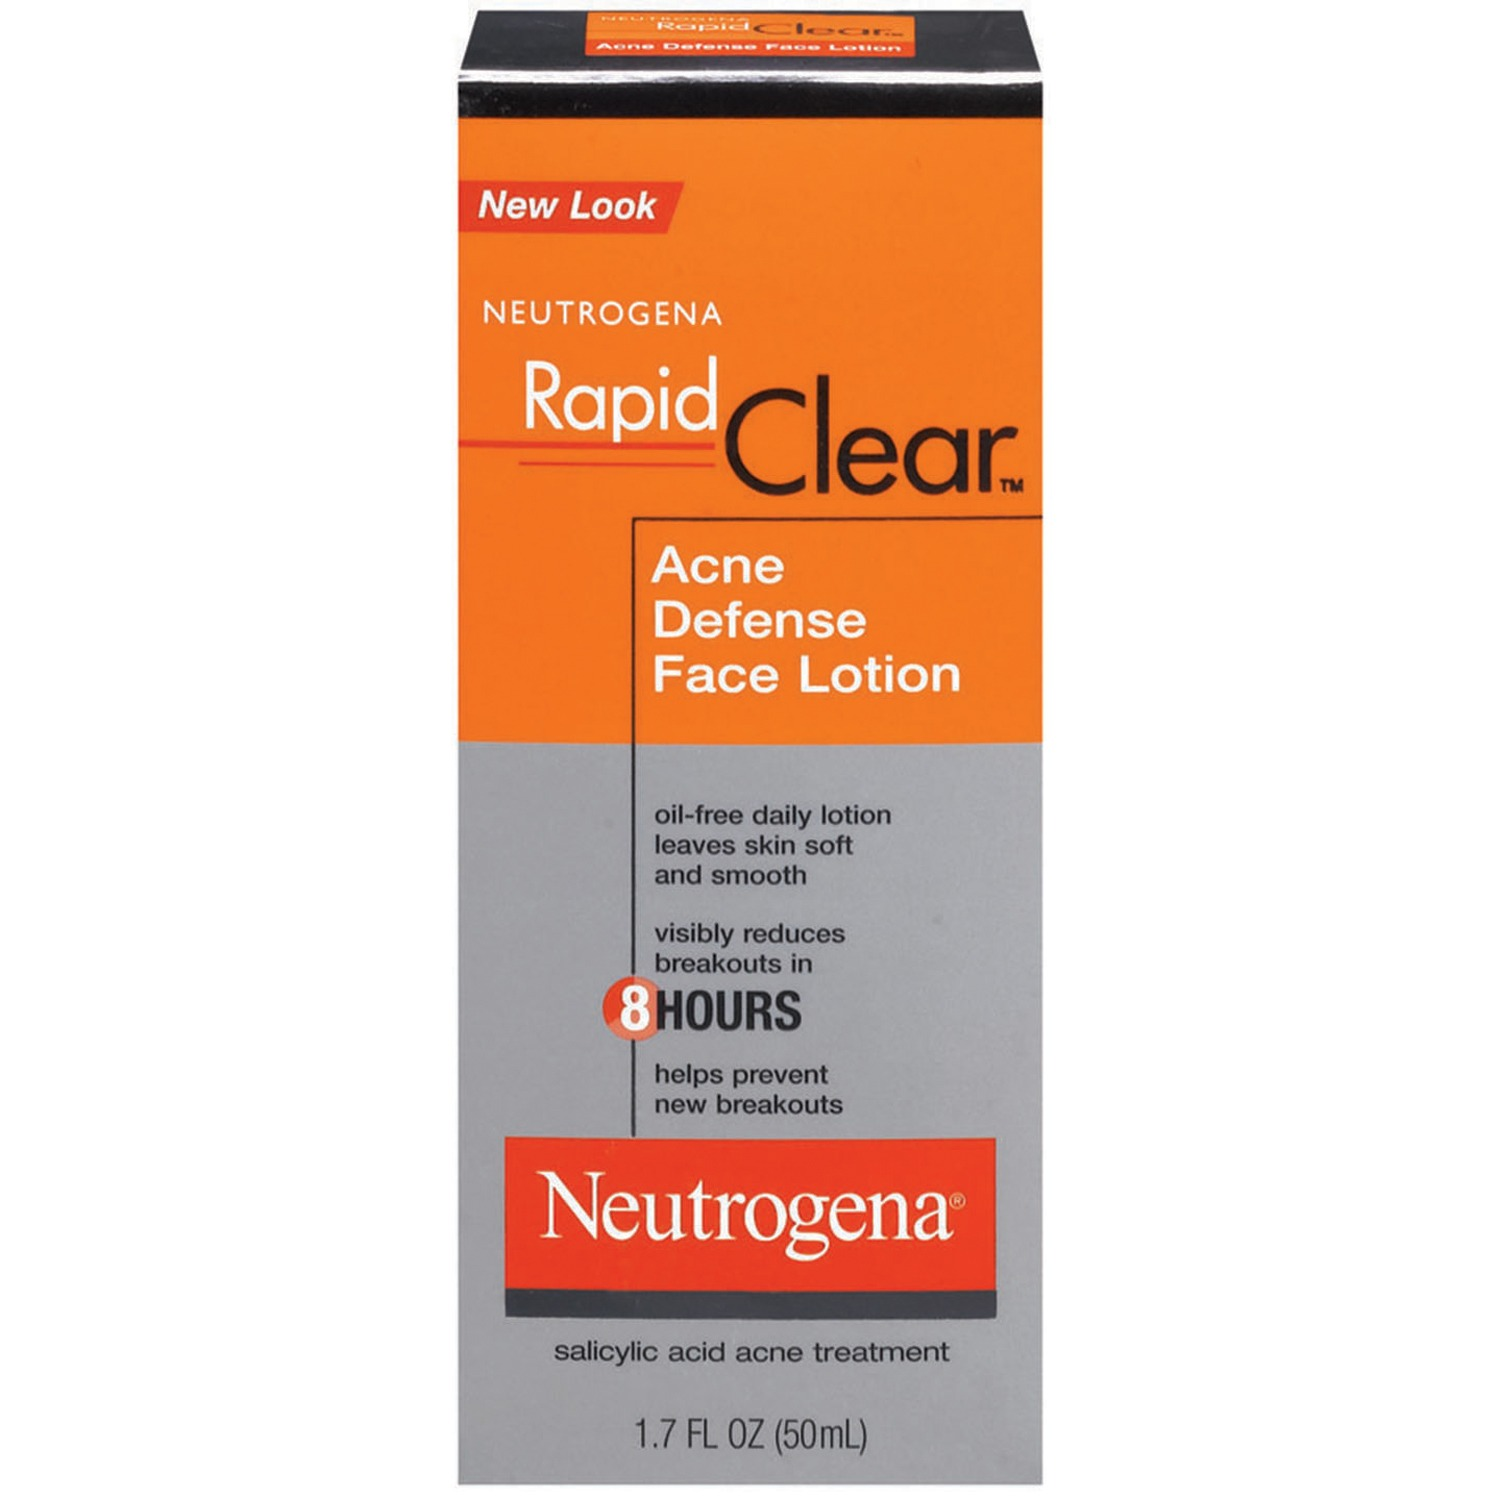 Neutrogena Rapid Clear Acne Defense Face Lotion, 1.7 Fl. Oz